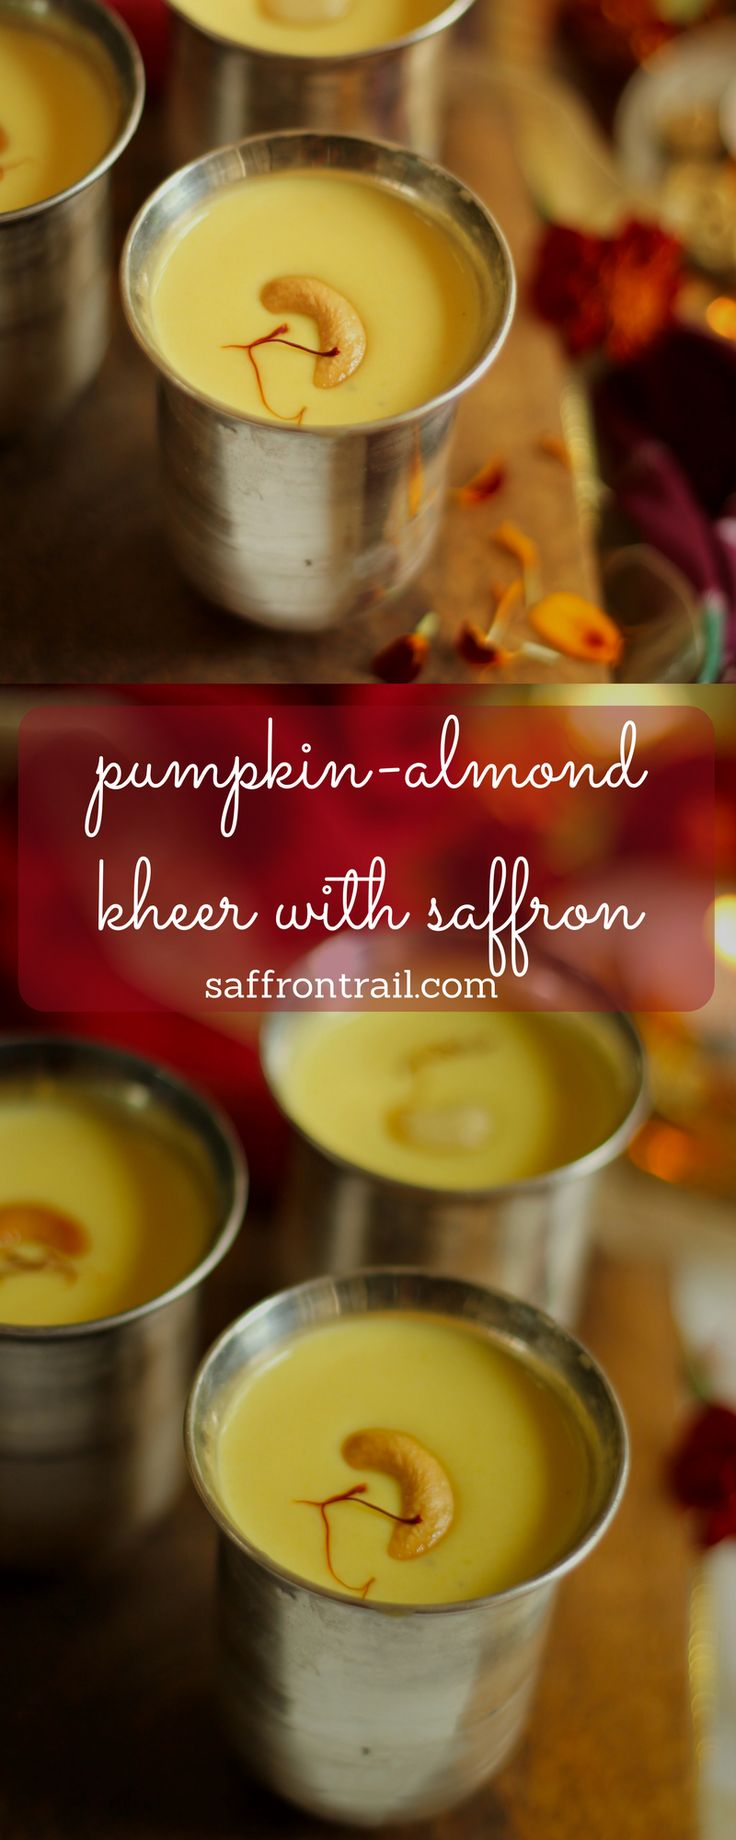 This Kesar Badam Kheer with pumpkin is my Mum's super hit recipe. It is creamy and thick, with the flavour of saffron lingering on your tastebuds making you crave for more!